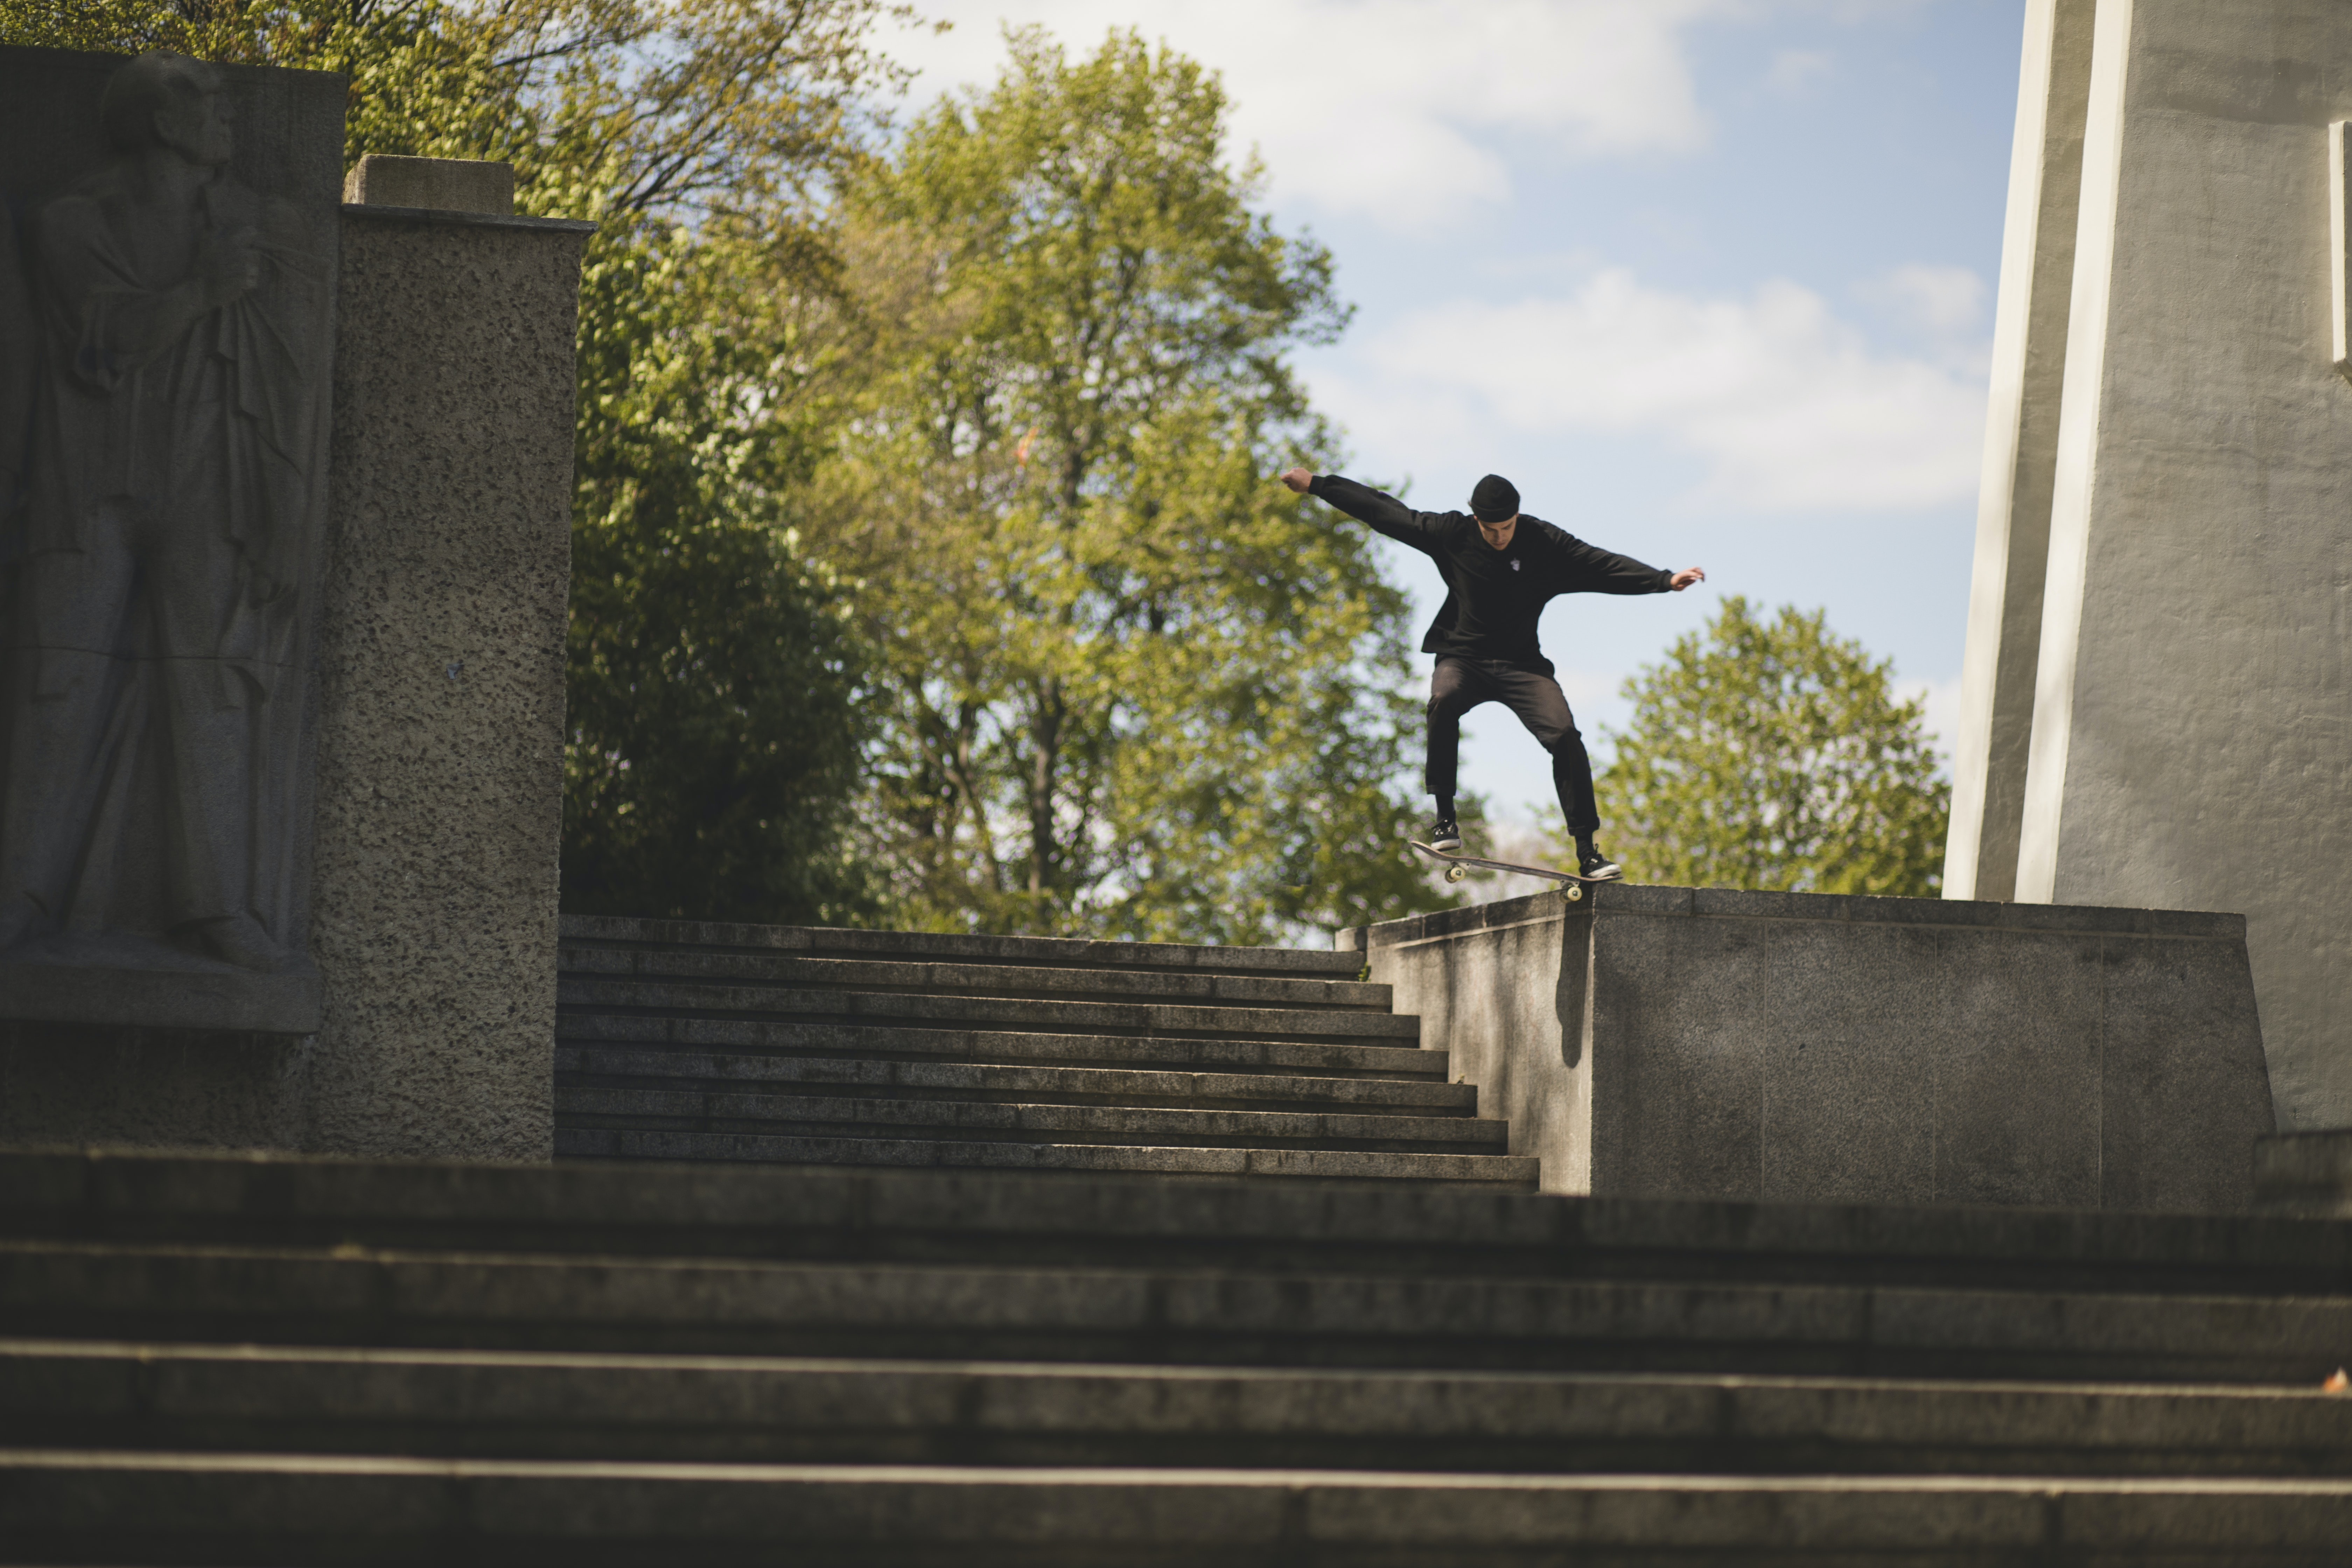 man riding on skateboard while doing nose grind trick